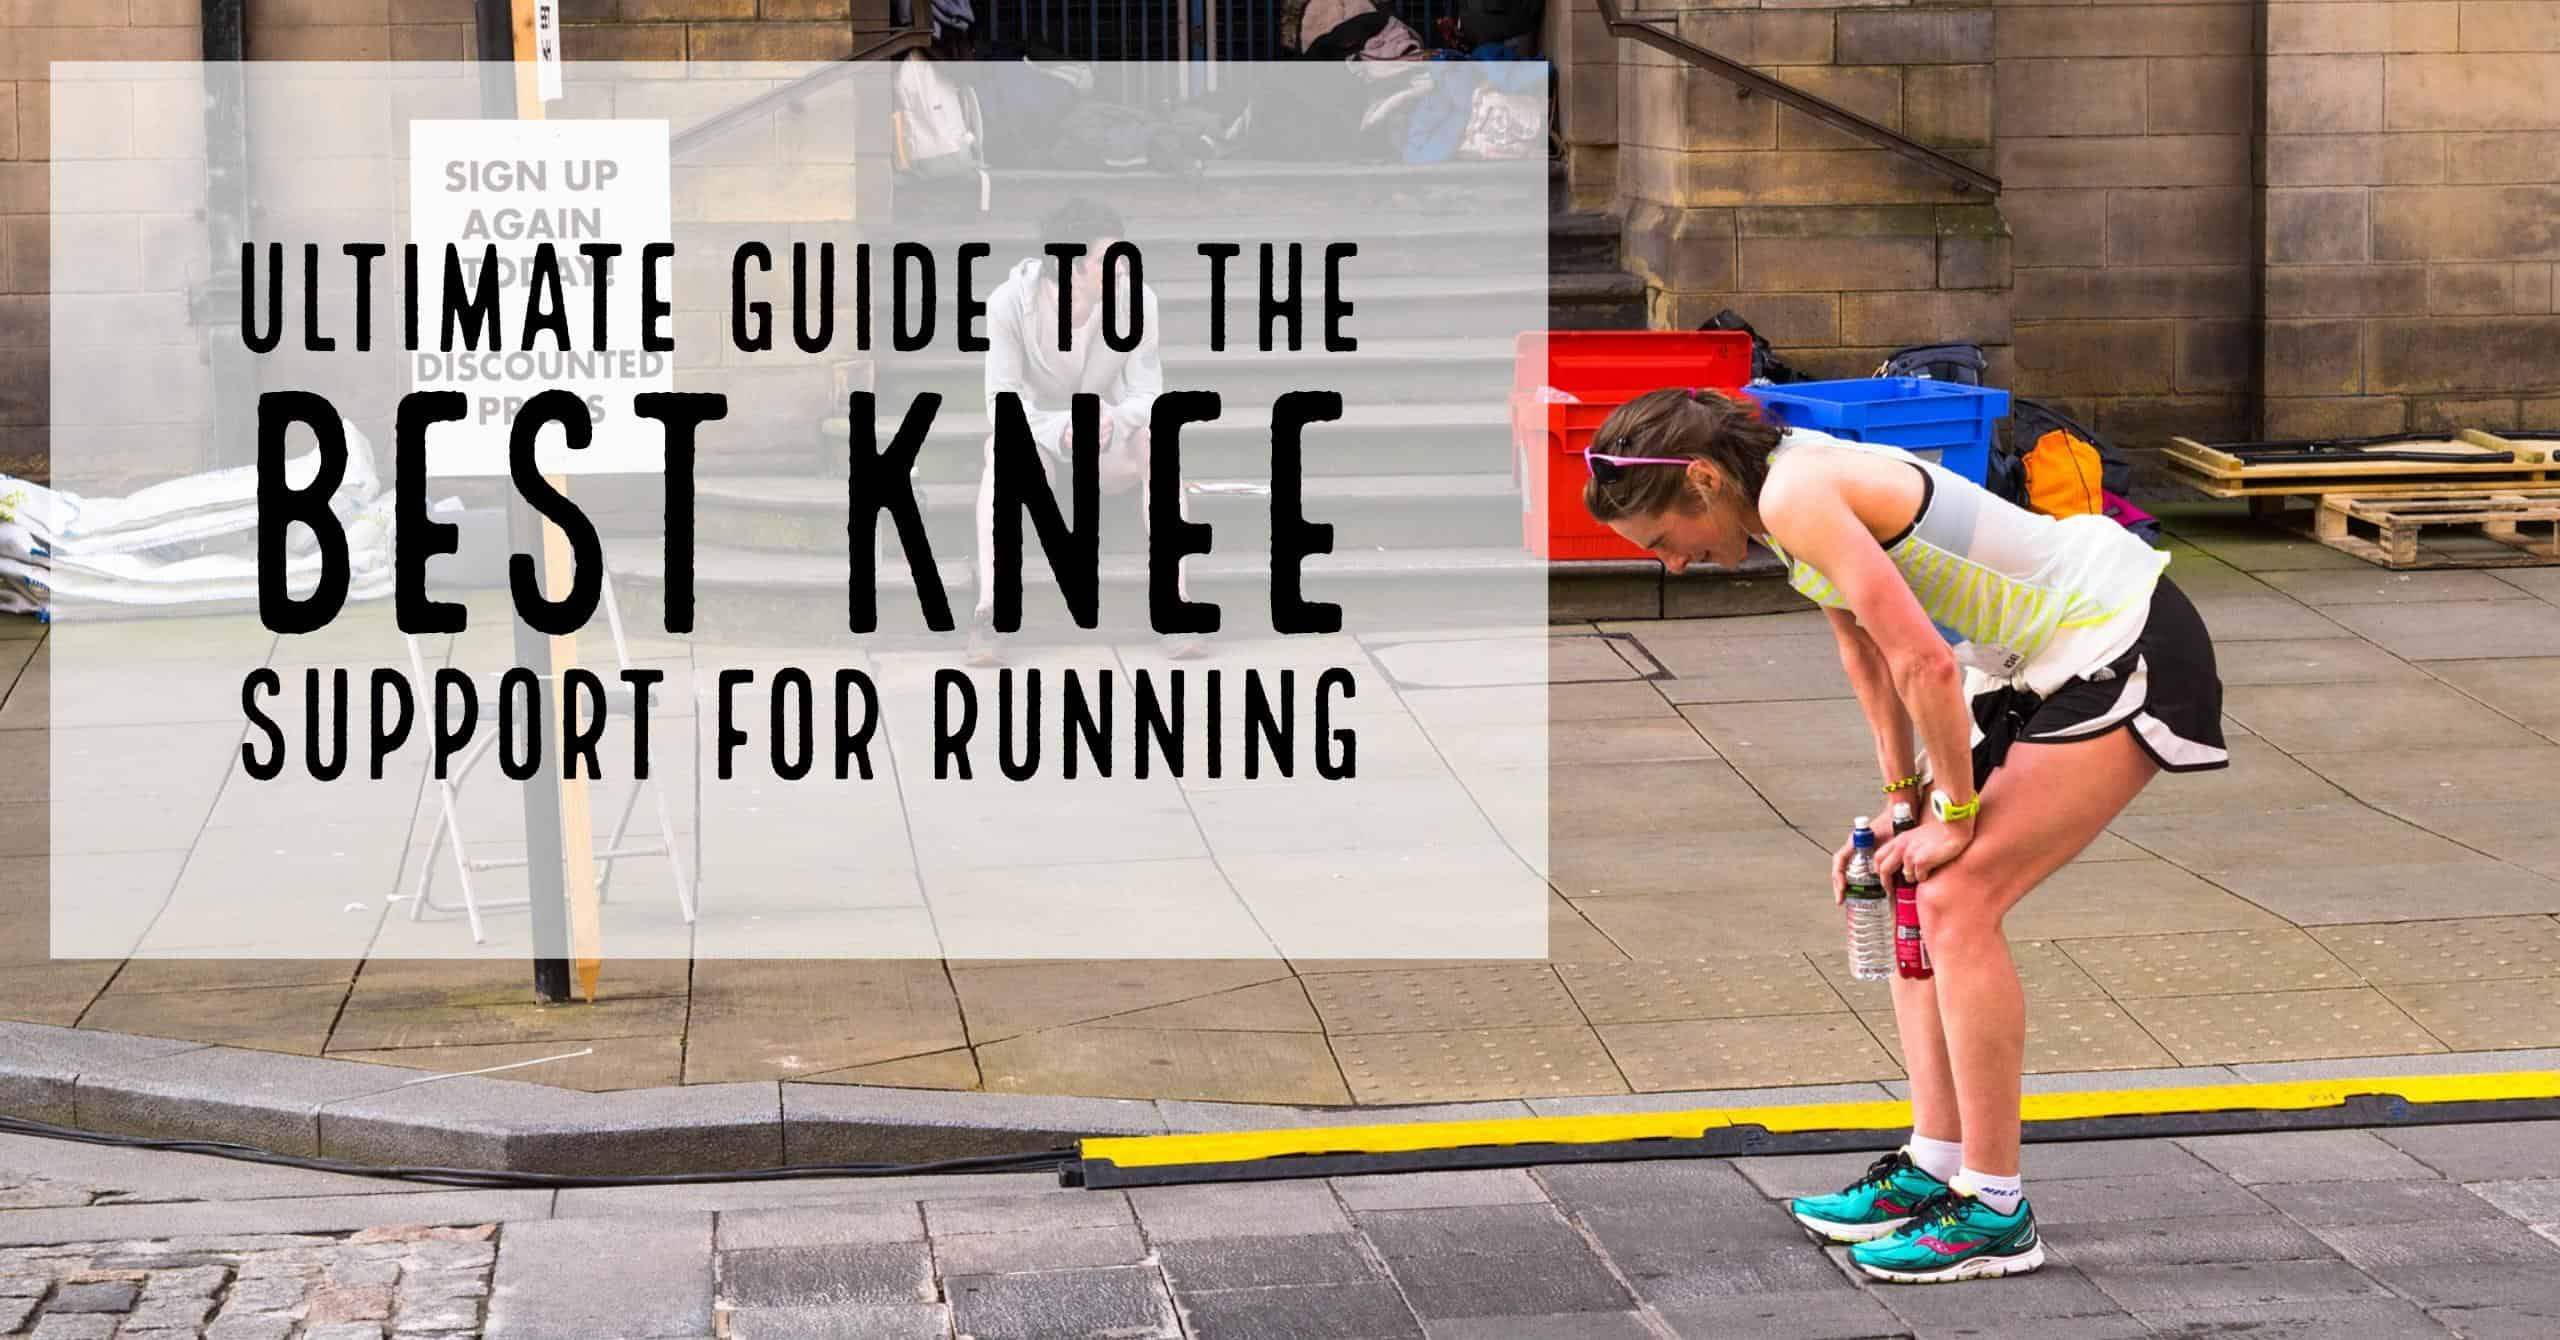 Knee pain from running can be a result of several different issues. Choosing the right knee support can help alleviate the pain. We break down everything (I mean everything) you need to know about knee braces in our Ultimate Guide to the Best Knee Support for Running.